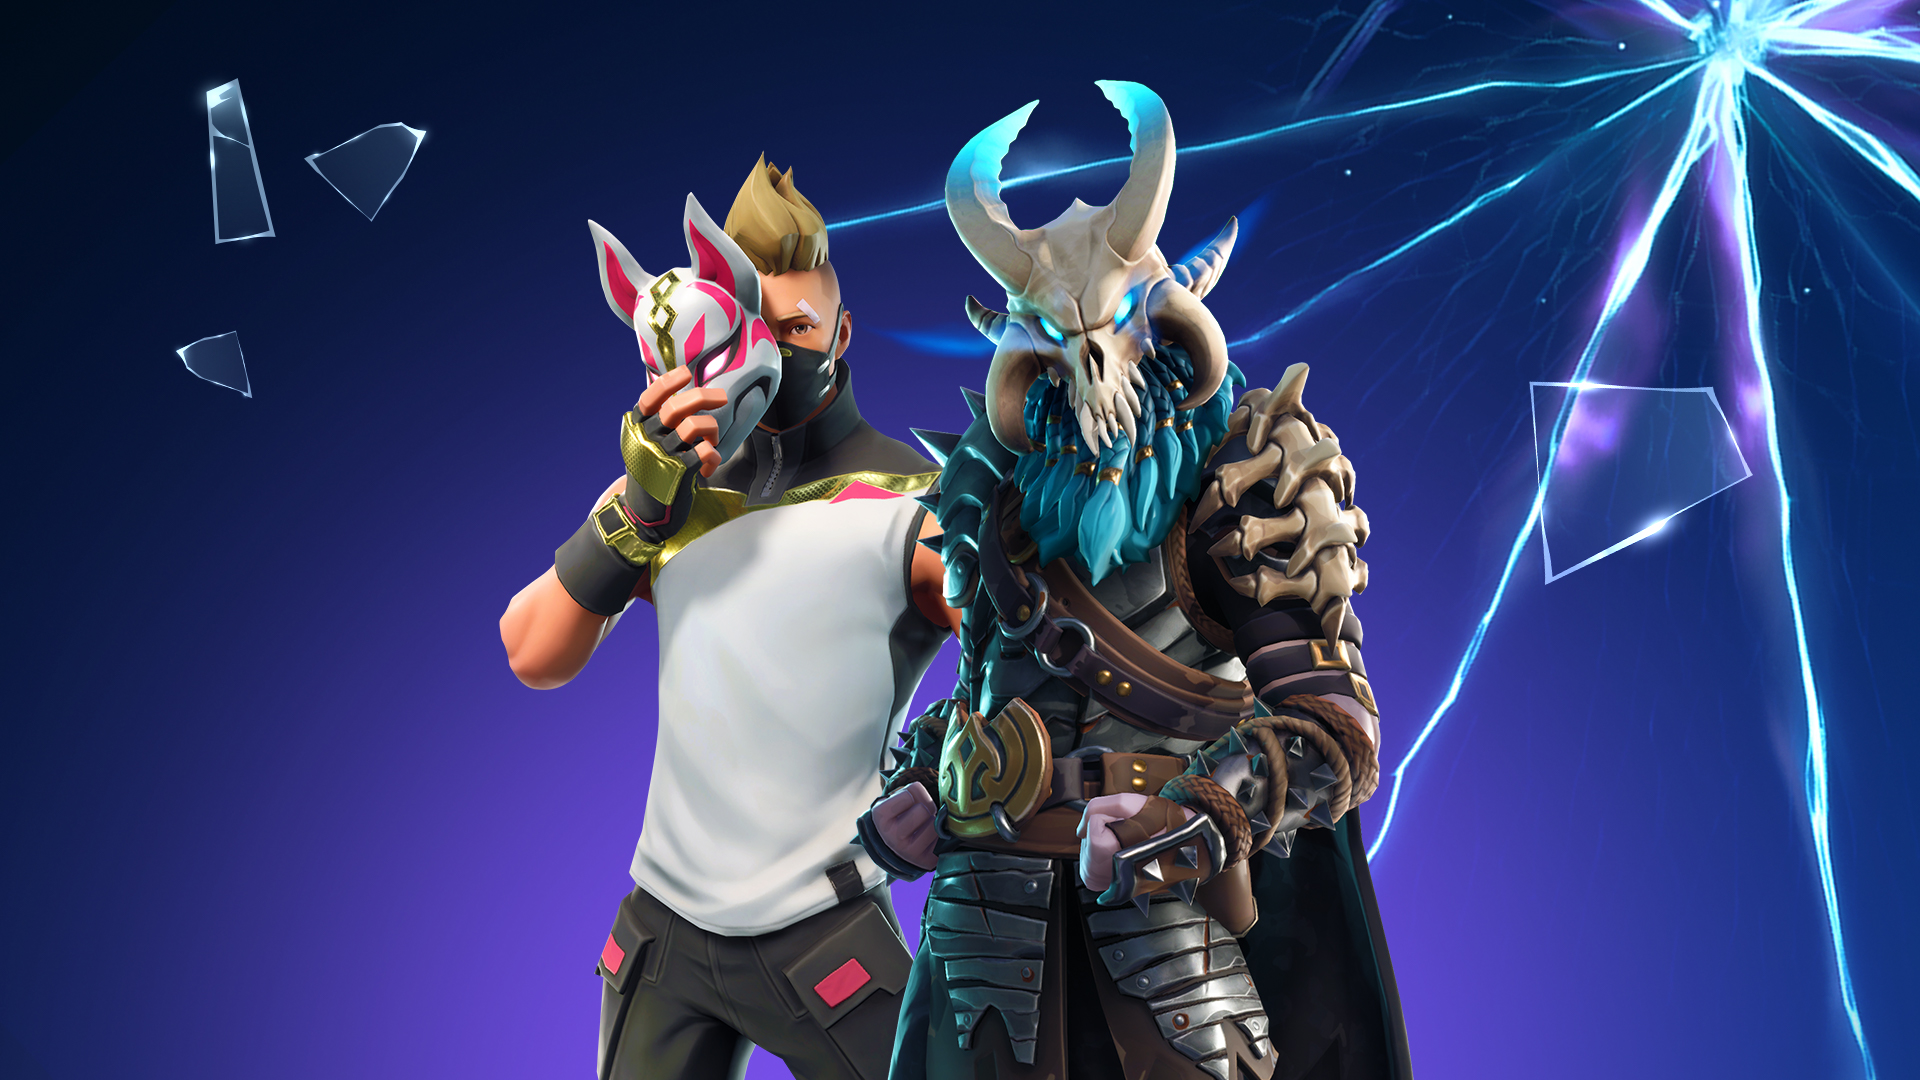 Fortnite Records Of Downloads And Earnings From Mobile Versions Let S Talk About Video Games 72hrs has earned a total of $302k usd in fortnite winnings. homepage let s talk about video games parliamo di videogiochi